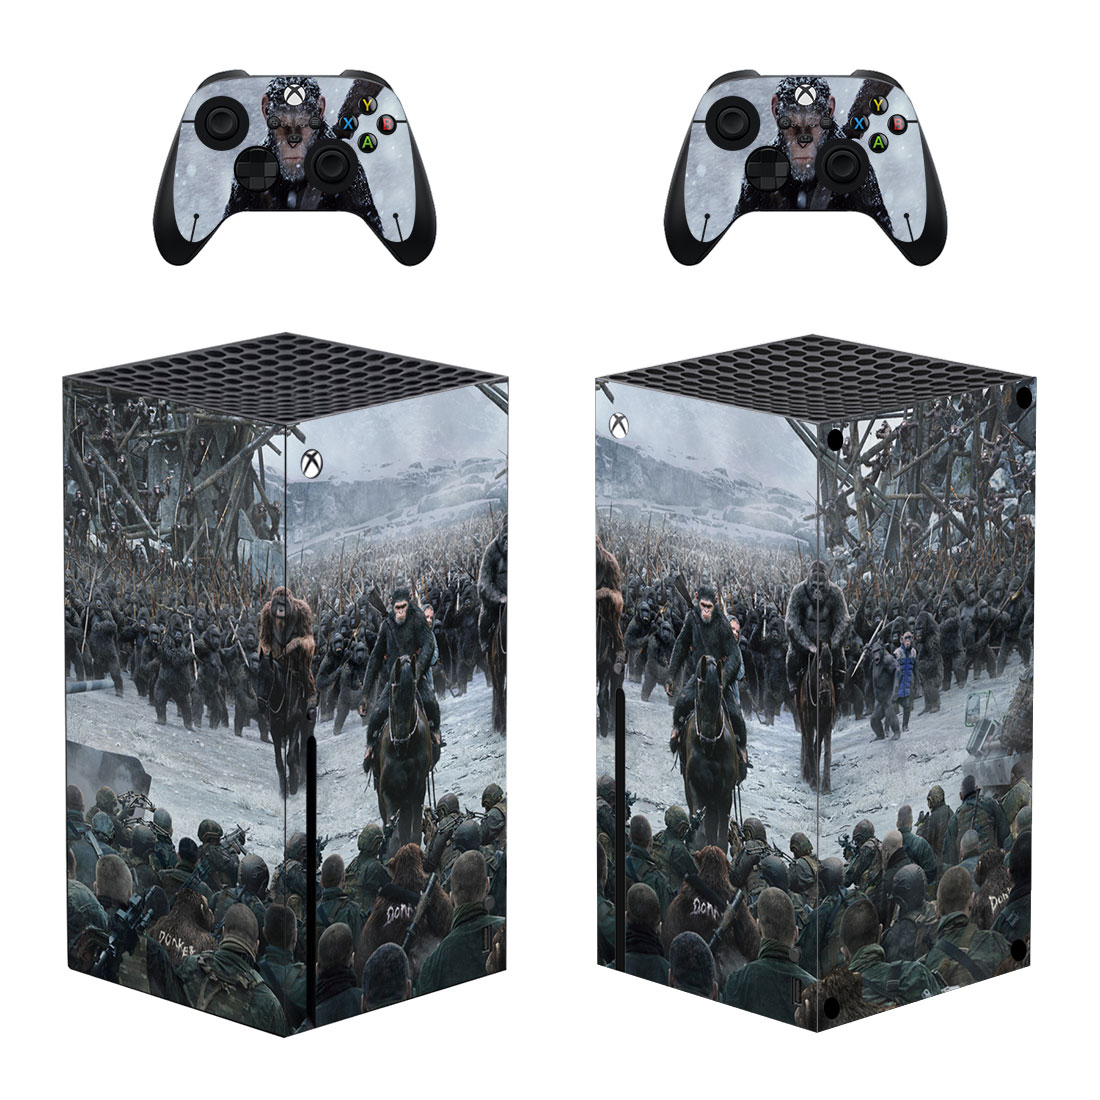 War For The Planet Of The Apes Xbox Series X Skin Sticker Decal